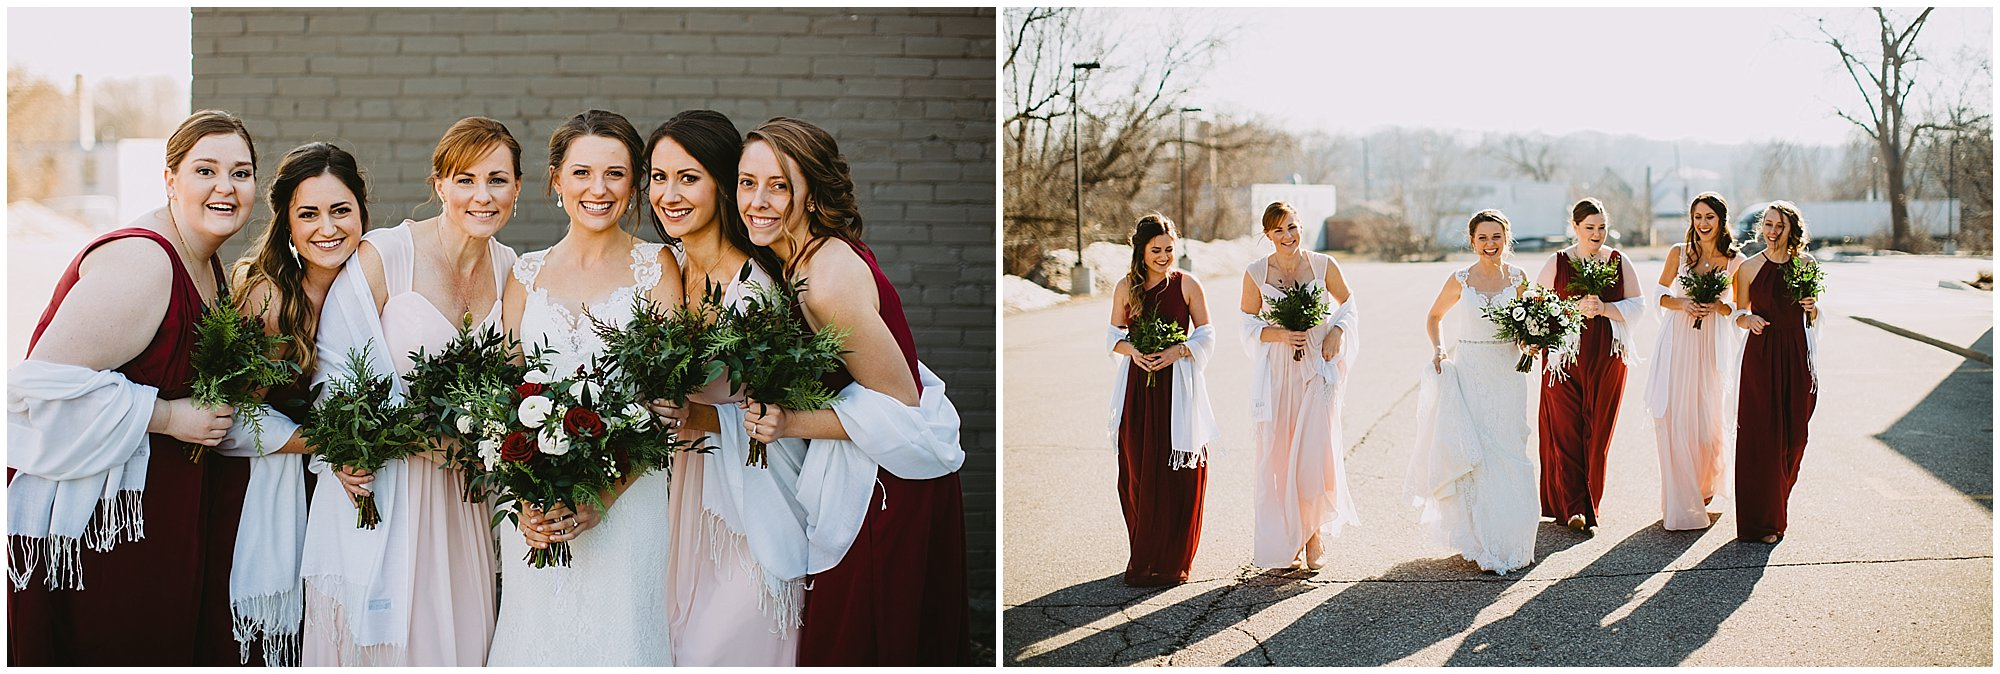 bridesmaids Goei Center Grand Rapids